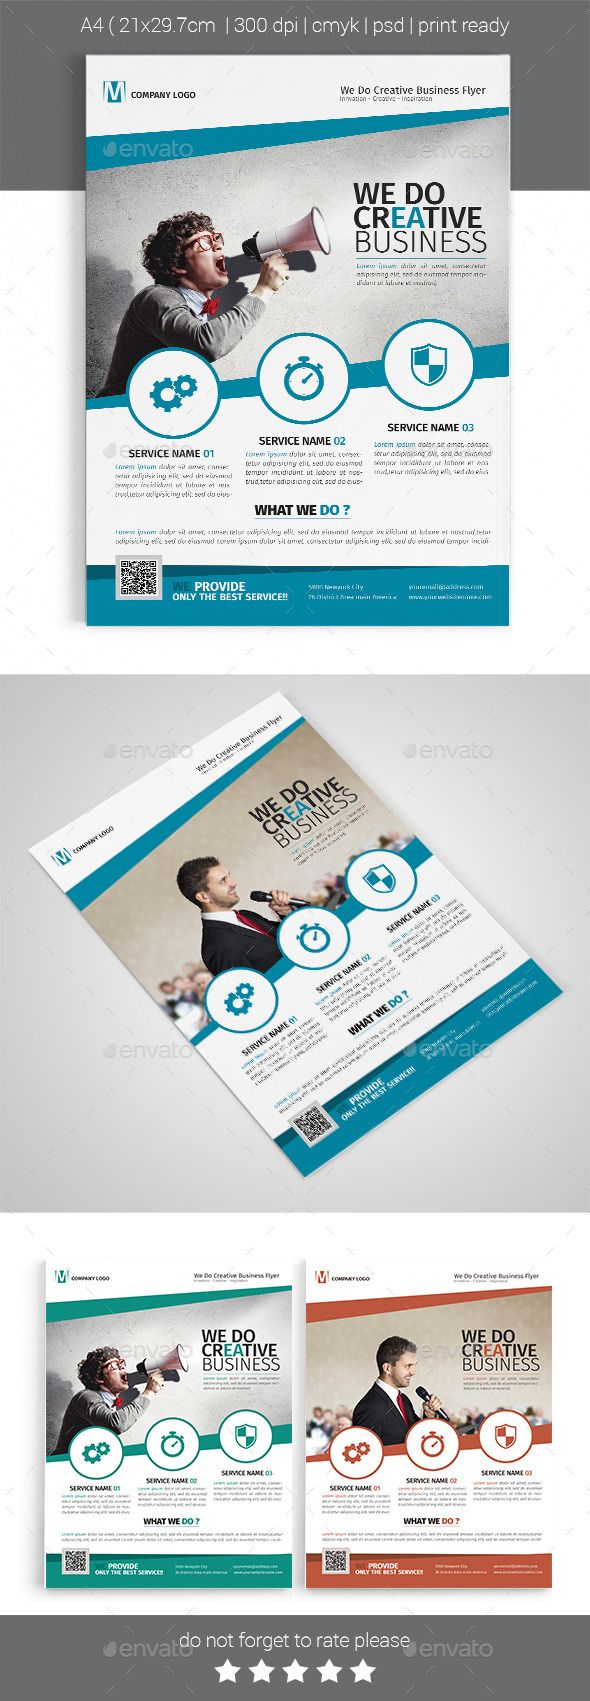 A4 Corporate Business Flyer Template #design Download: http://graphicriver.net/item/a4-corporate-business-flyer-template-vol-08/12242113?ref=ksioks